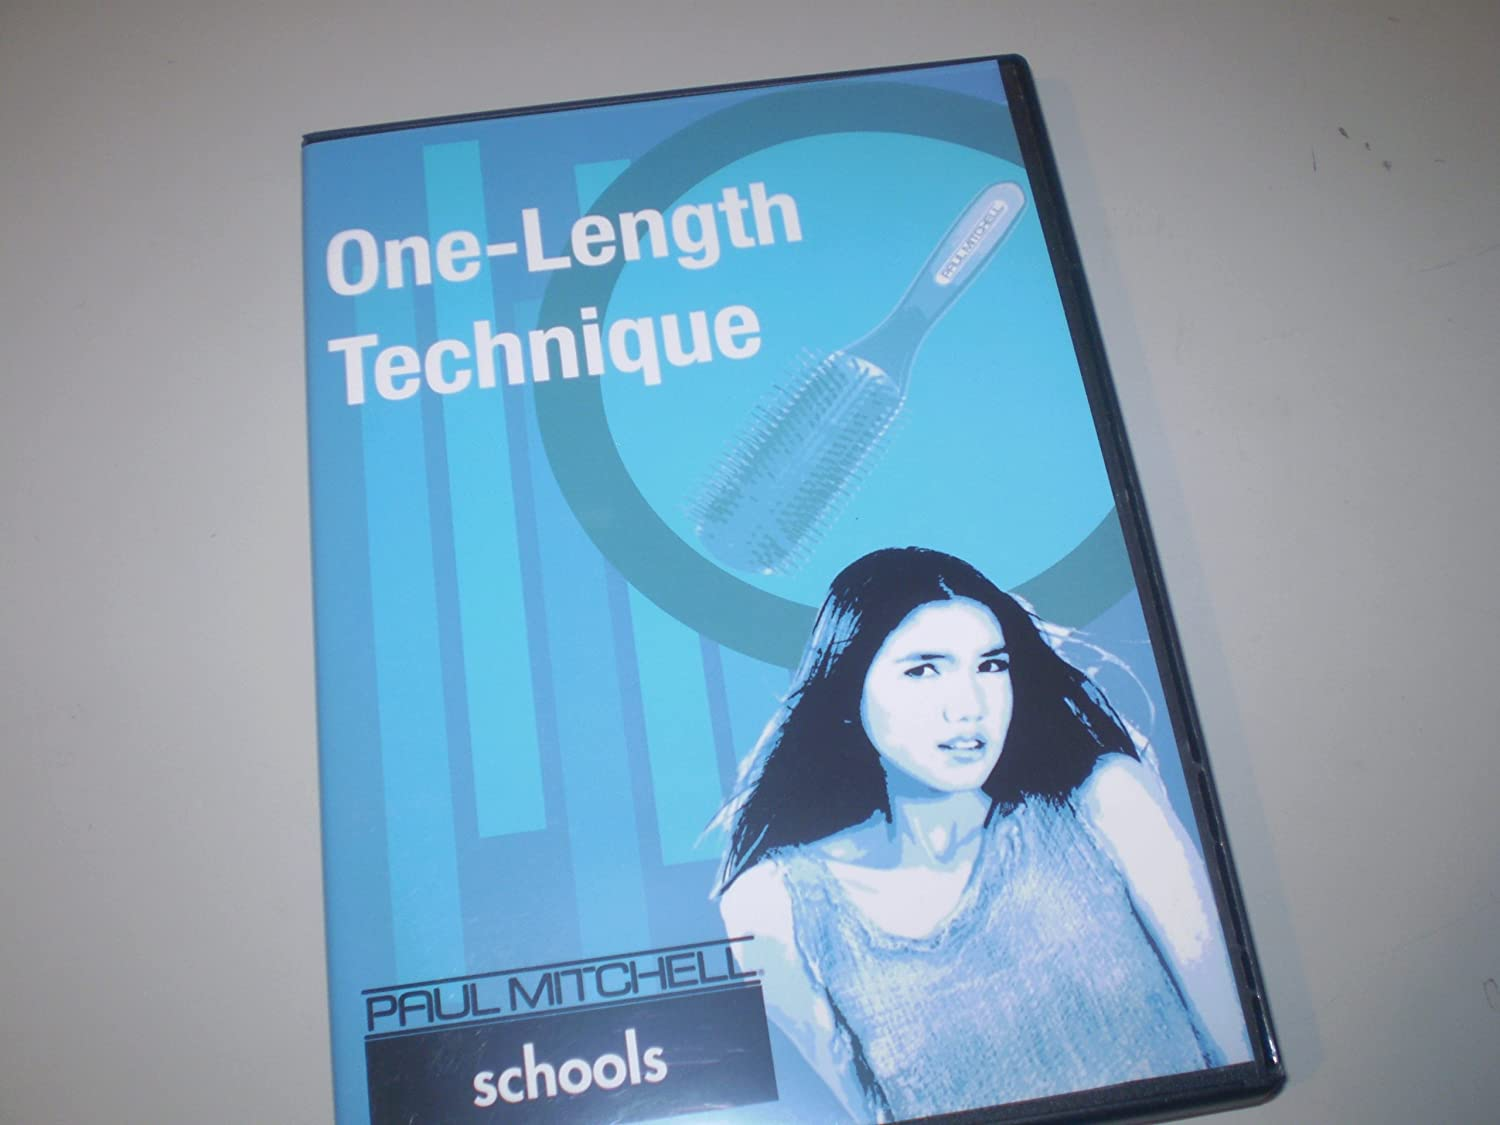 Amazon.com: One-Length Technique - Paul Mitchell Schools DVD